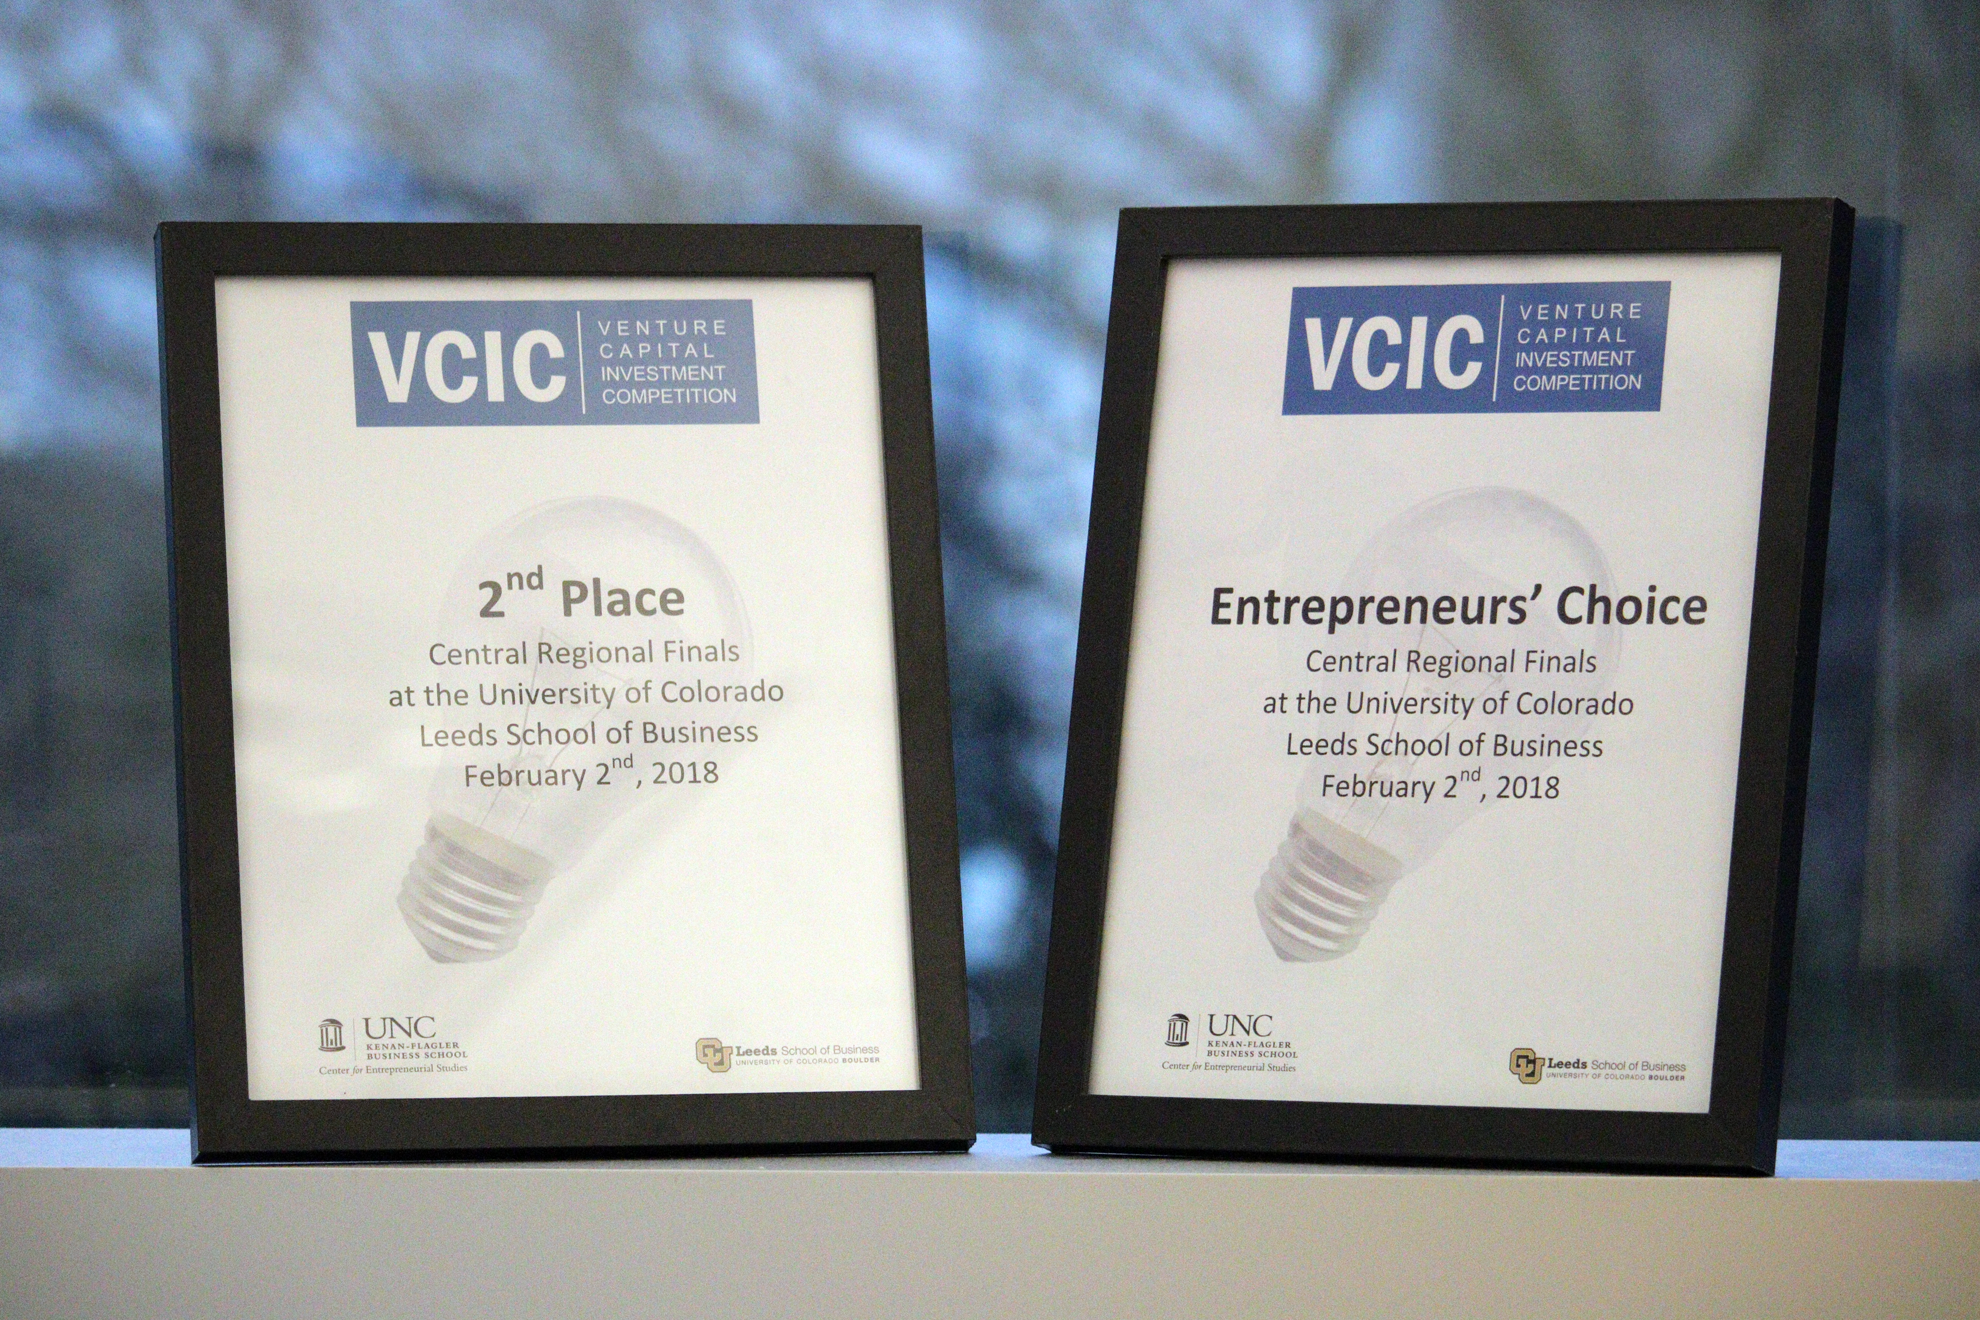 Congratulations to evening MBAs Natalie Cook, Renate Kroll, Vera Martinovich, Sara Mosiman, and Hillary Obye, who took home the Entrepreneurs' Choice award and the Second Place prize in the VCIC West Regionals this past Saturday in Boulder, Colorado